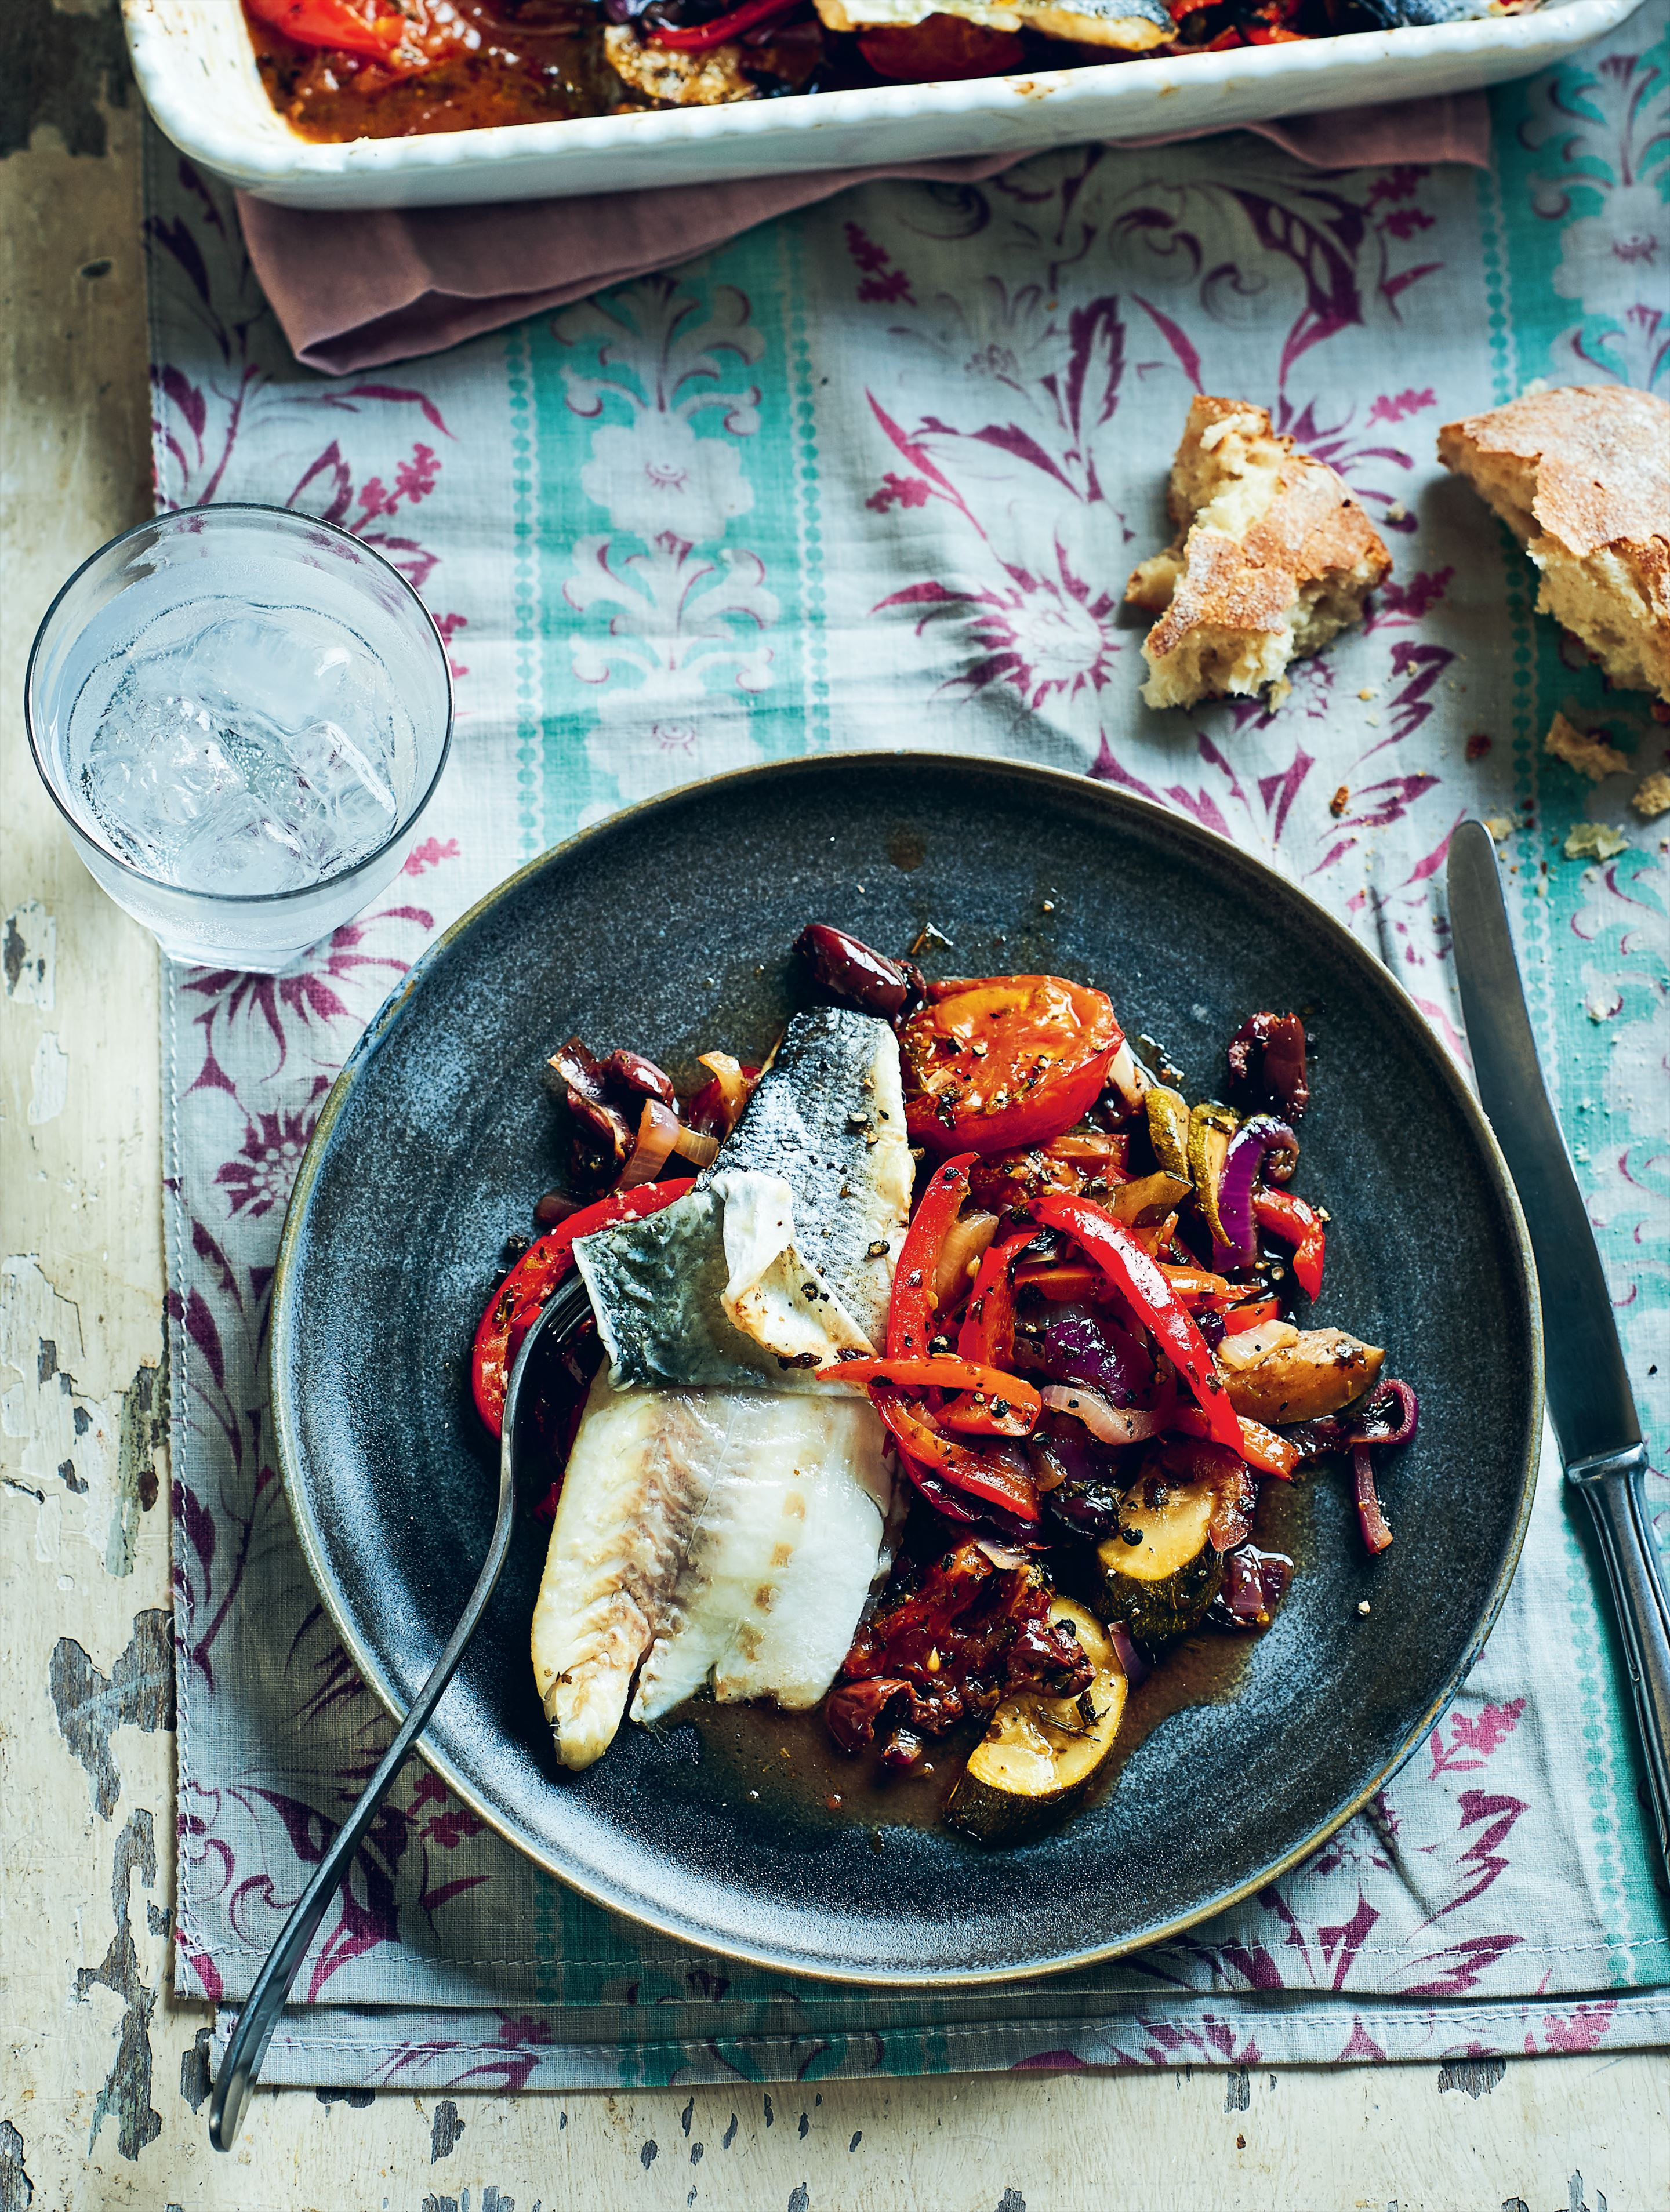 Sea bass with stewed summer vegetables